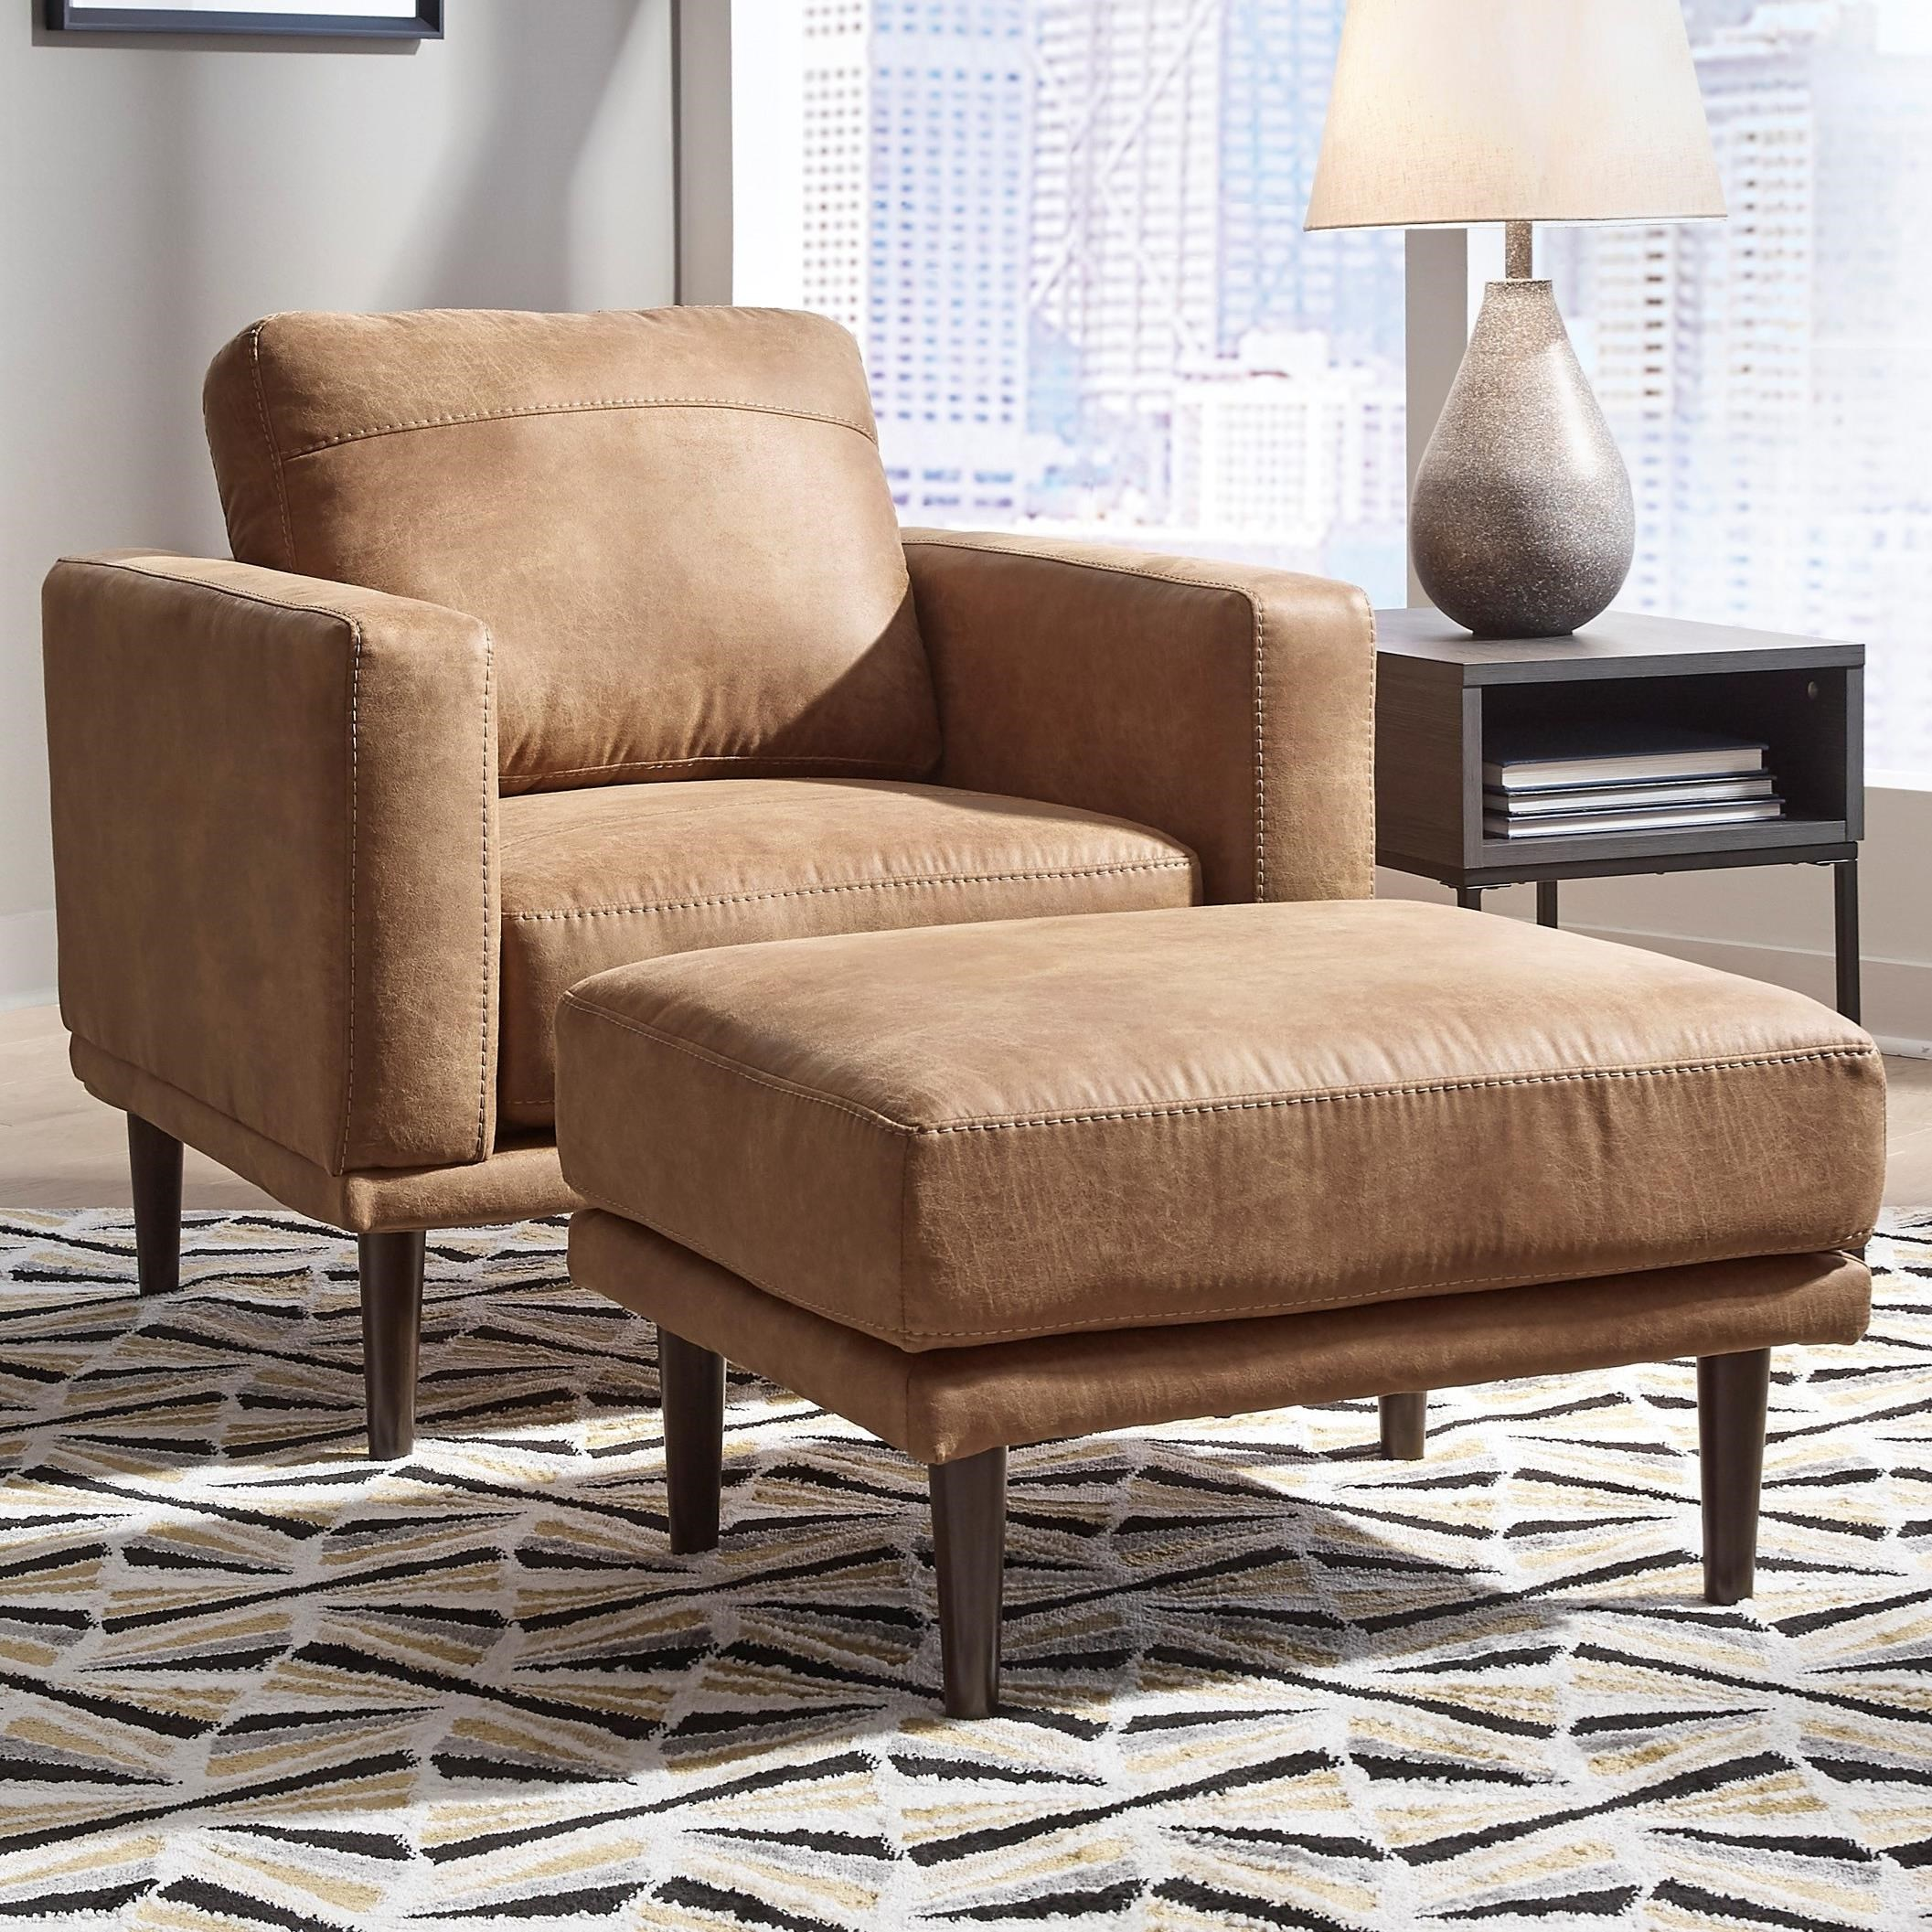 Arroyo RTA Chair & Ottoman by Signature Design by Ashley at Simply Home by Lindy's